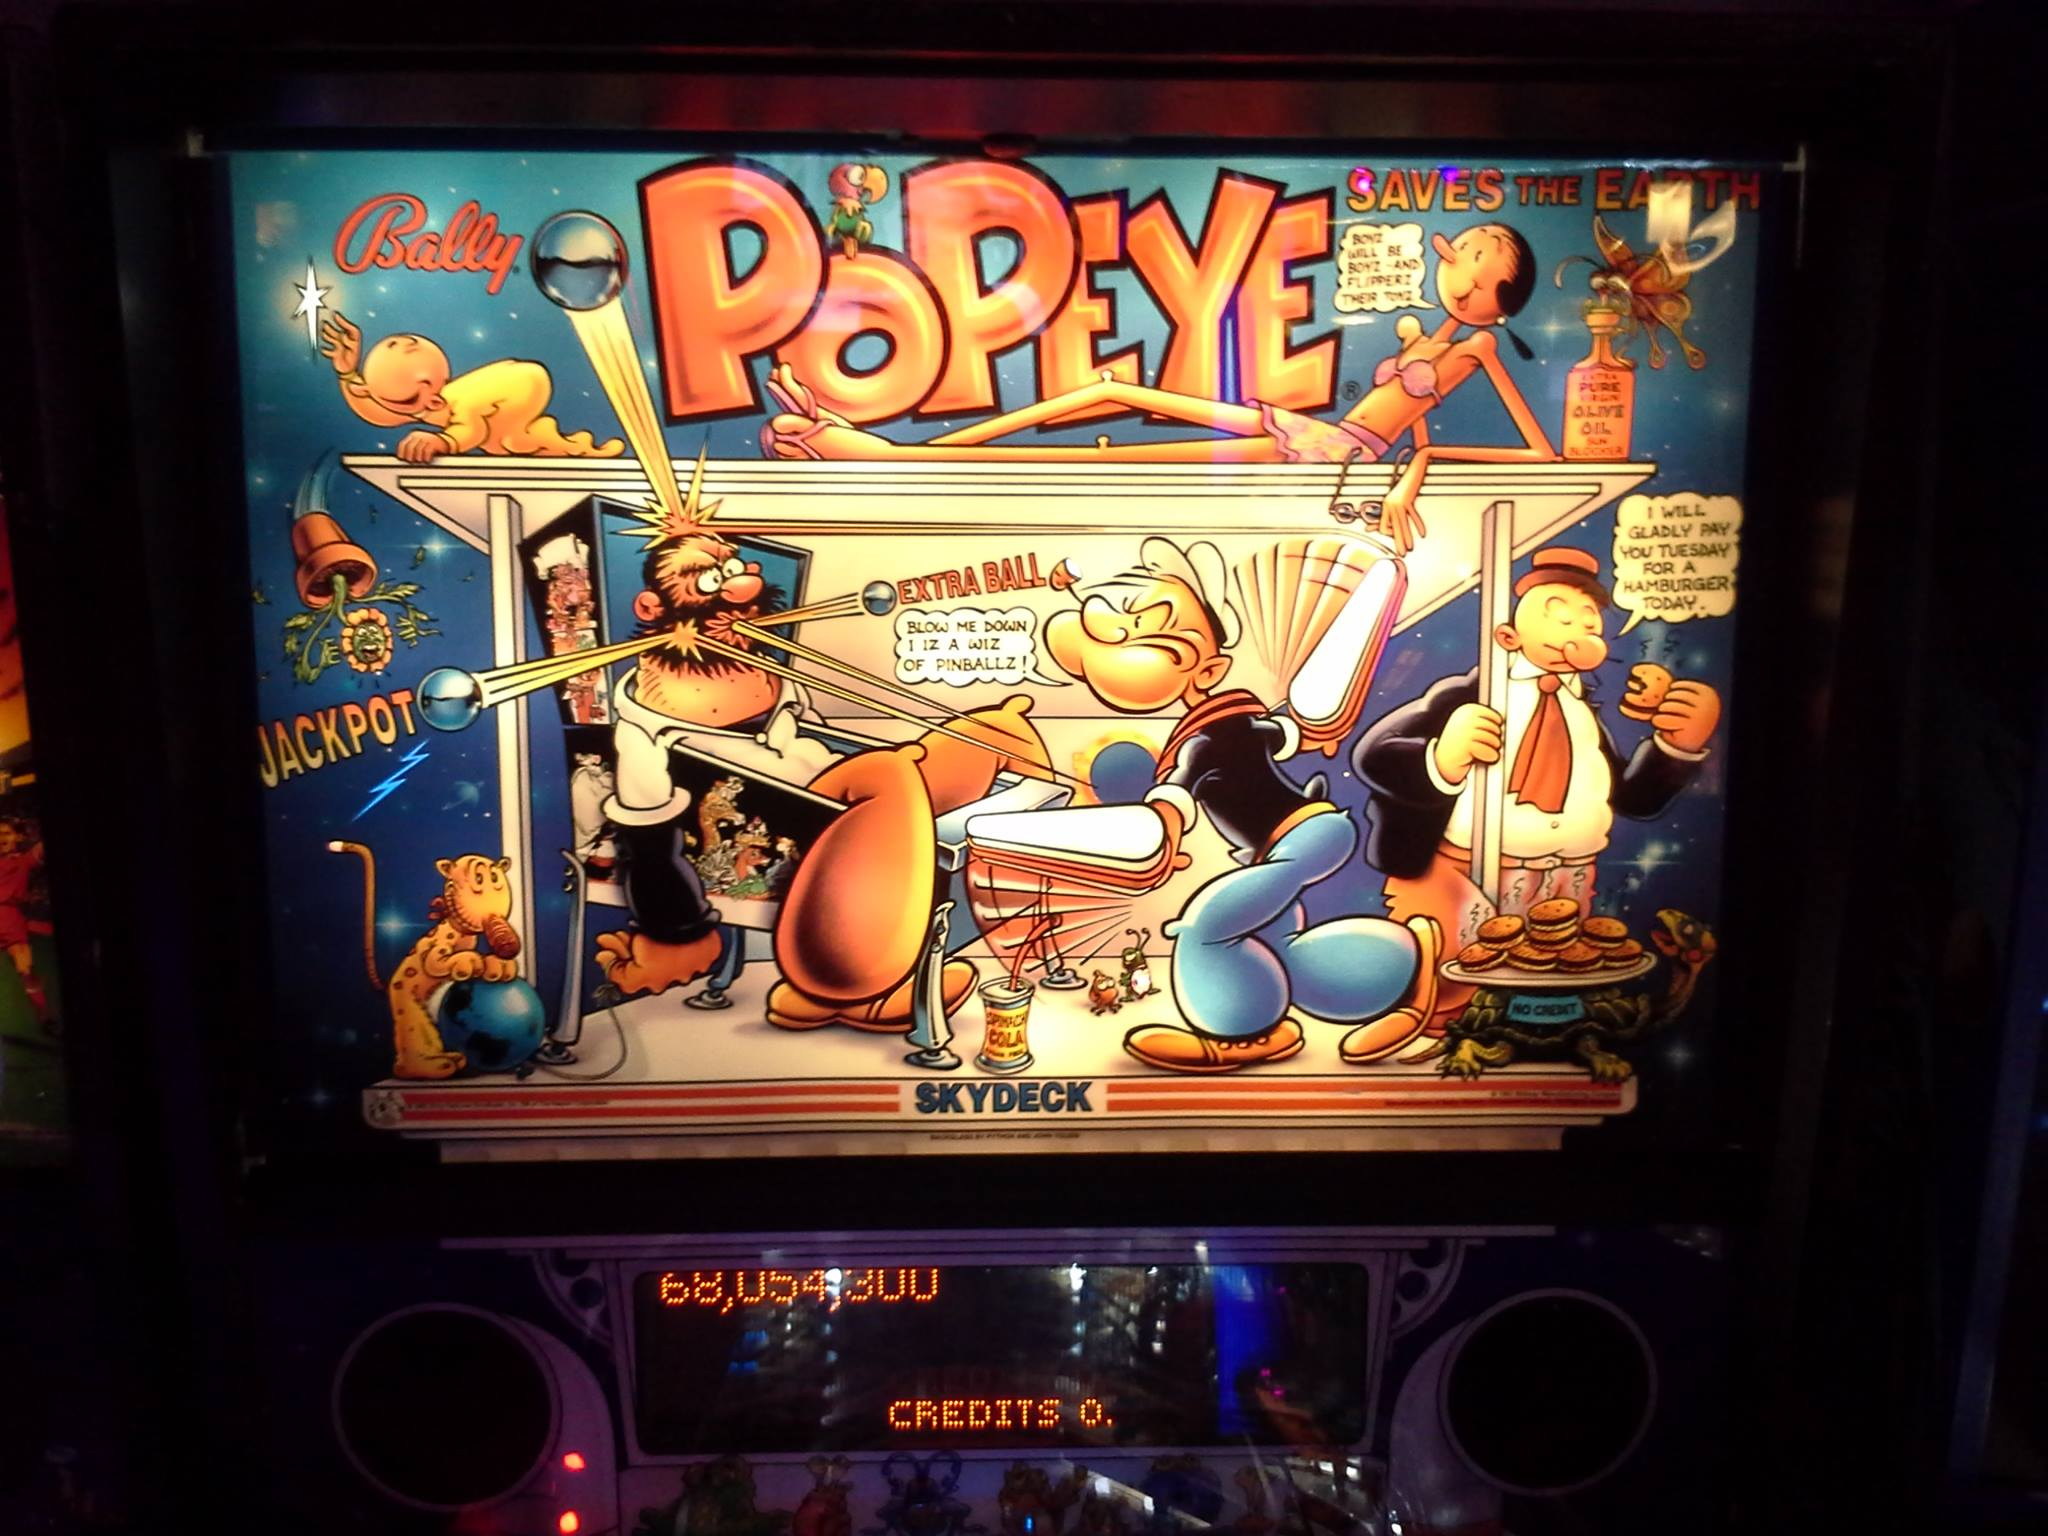 Popeye Saves the Earth 68,054,300 points